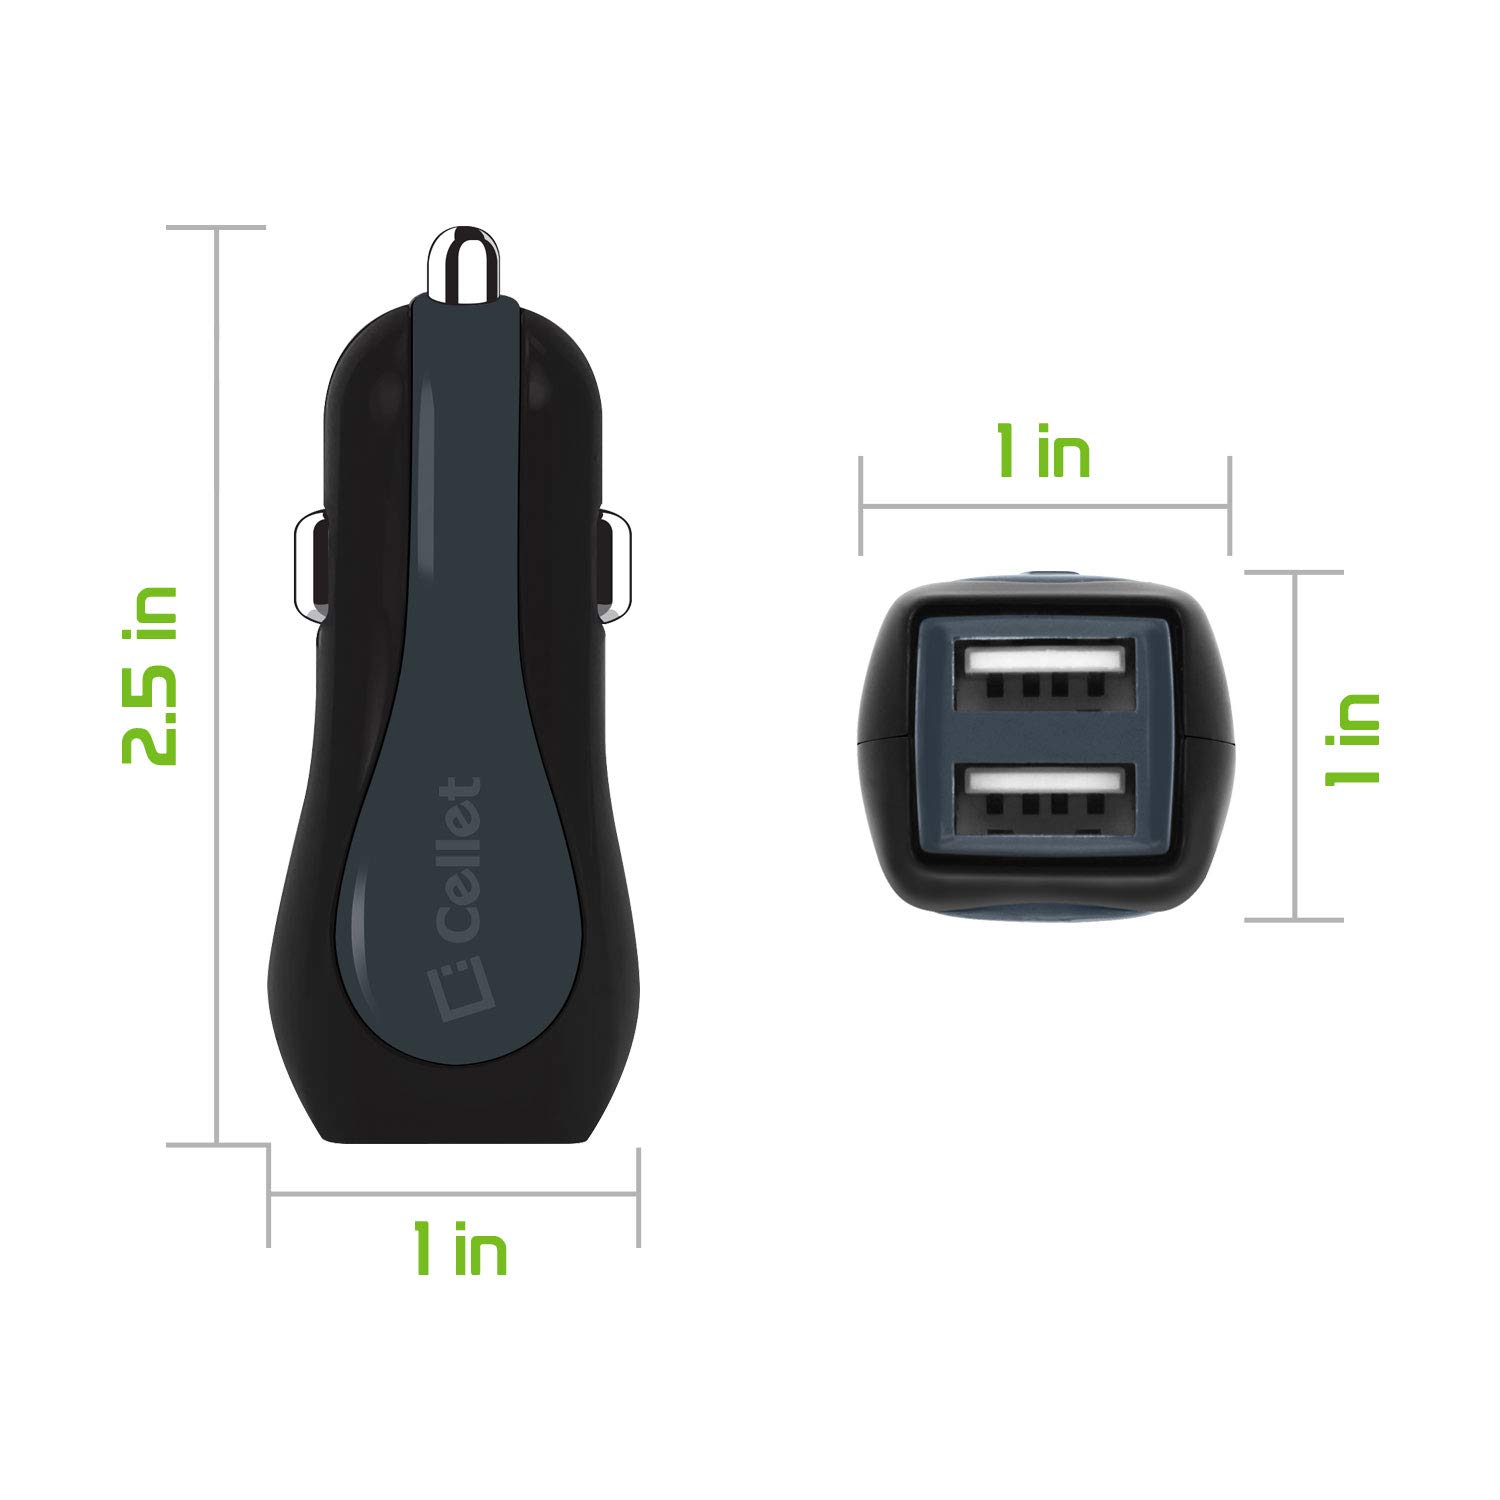 E5 Cruise E4 Plus Cellet PMICROMS21 Fast Charging 2.4Amp Output Dual USB Car Charger with 4ft Long Micro USB Cable for Motorola Moto E4 G6 Play E5 Plus E5 Play G6 Forge 4351521459 E5 Supra